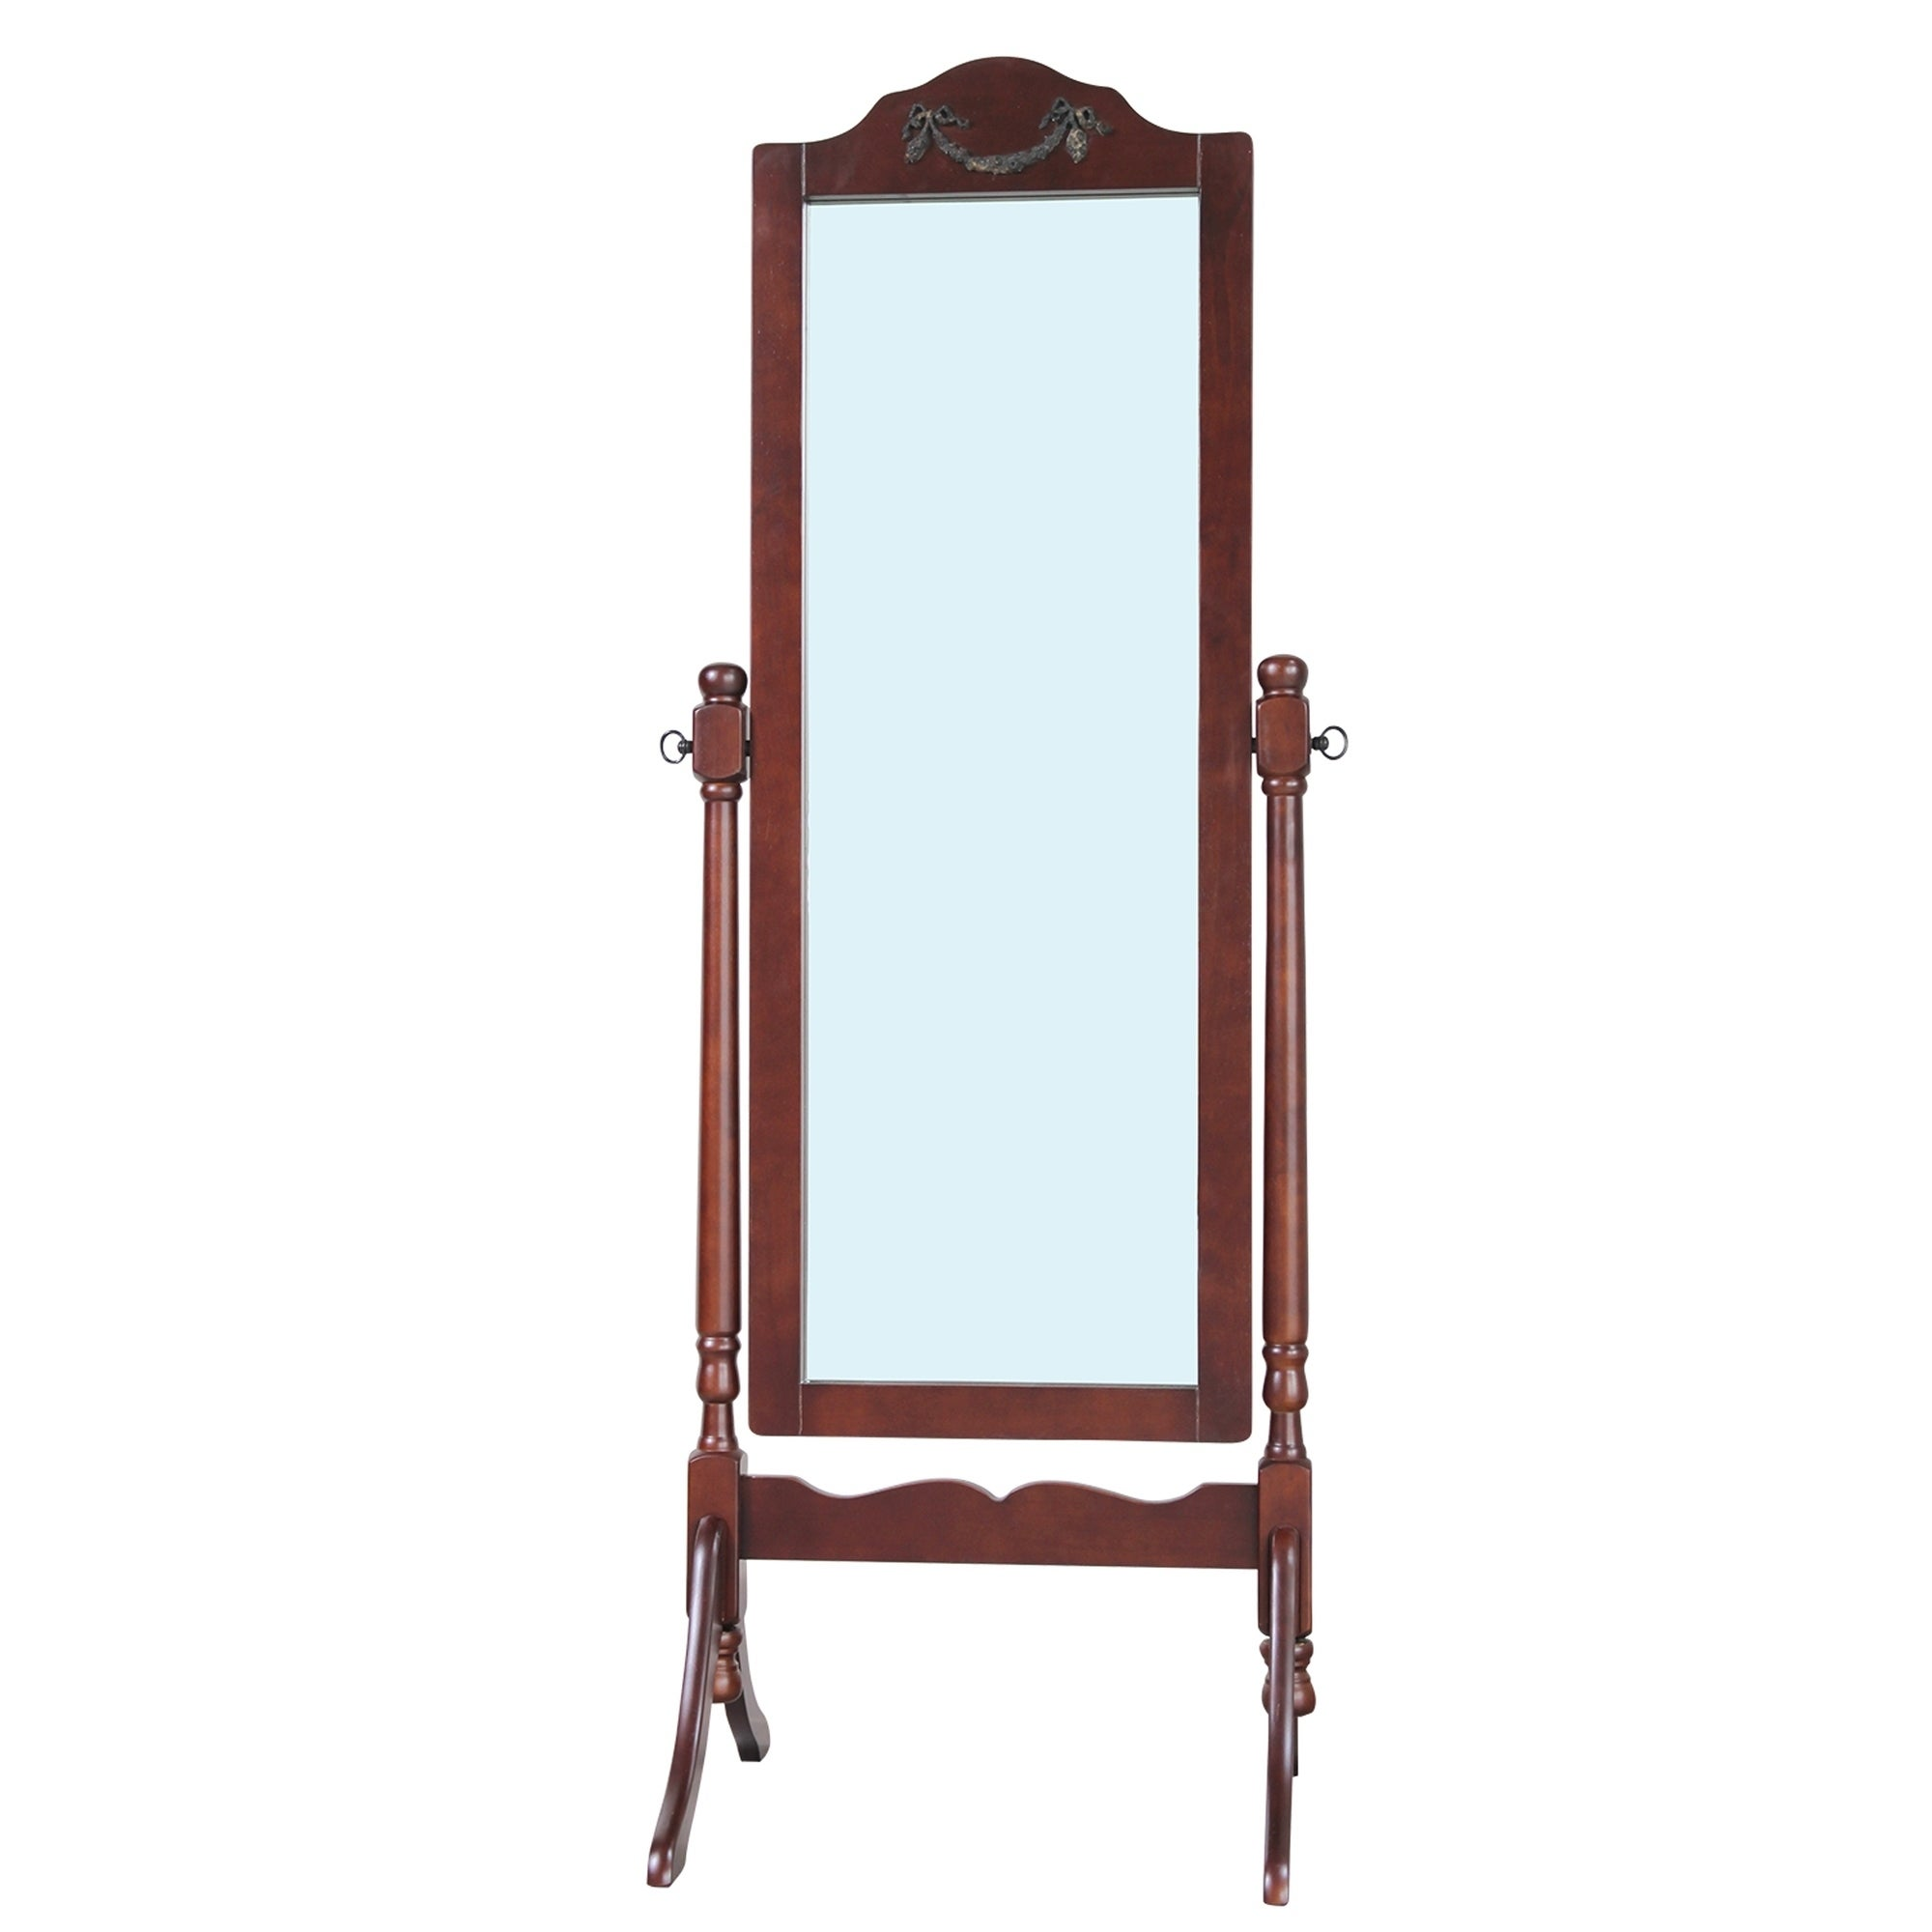 Solid Wood Standing Floor Mirror Dark Brown Blue Antique A N Overstock 17819005